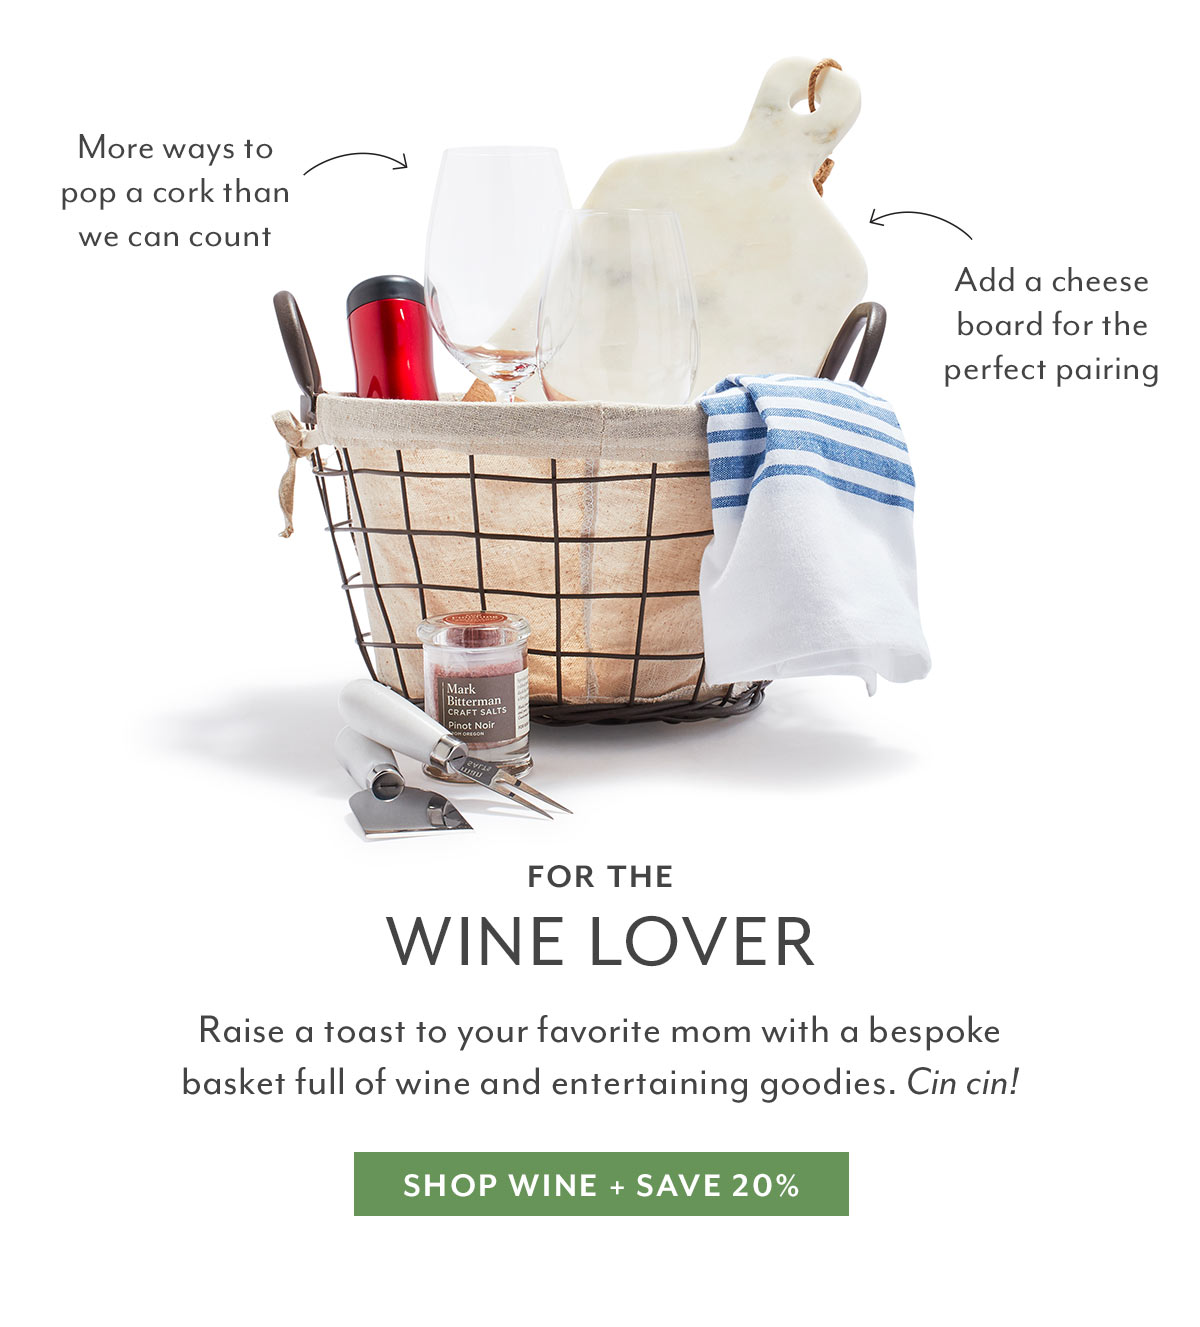 For the Wine Lover